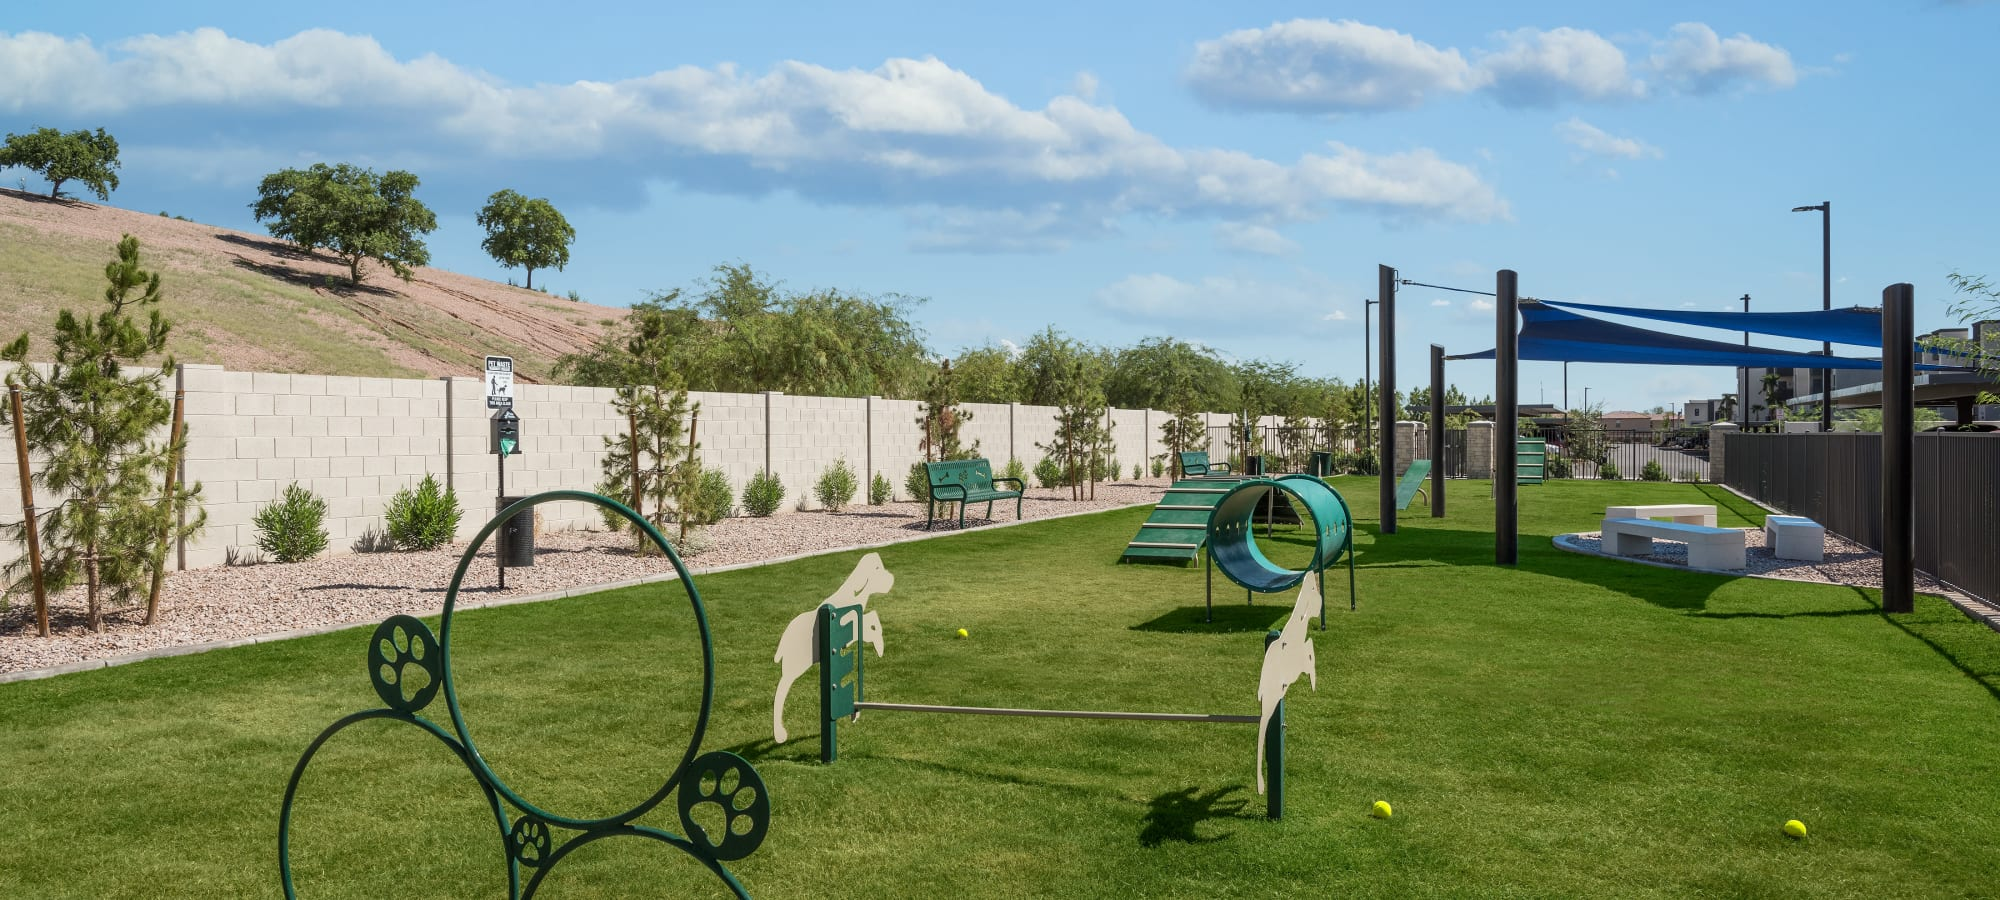 Dog park at Aviva in Mesa, Arizona